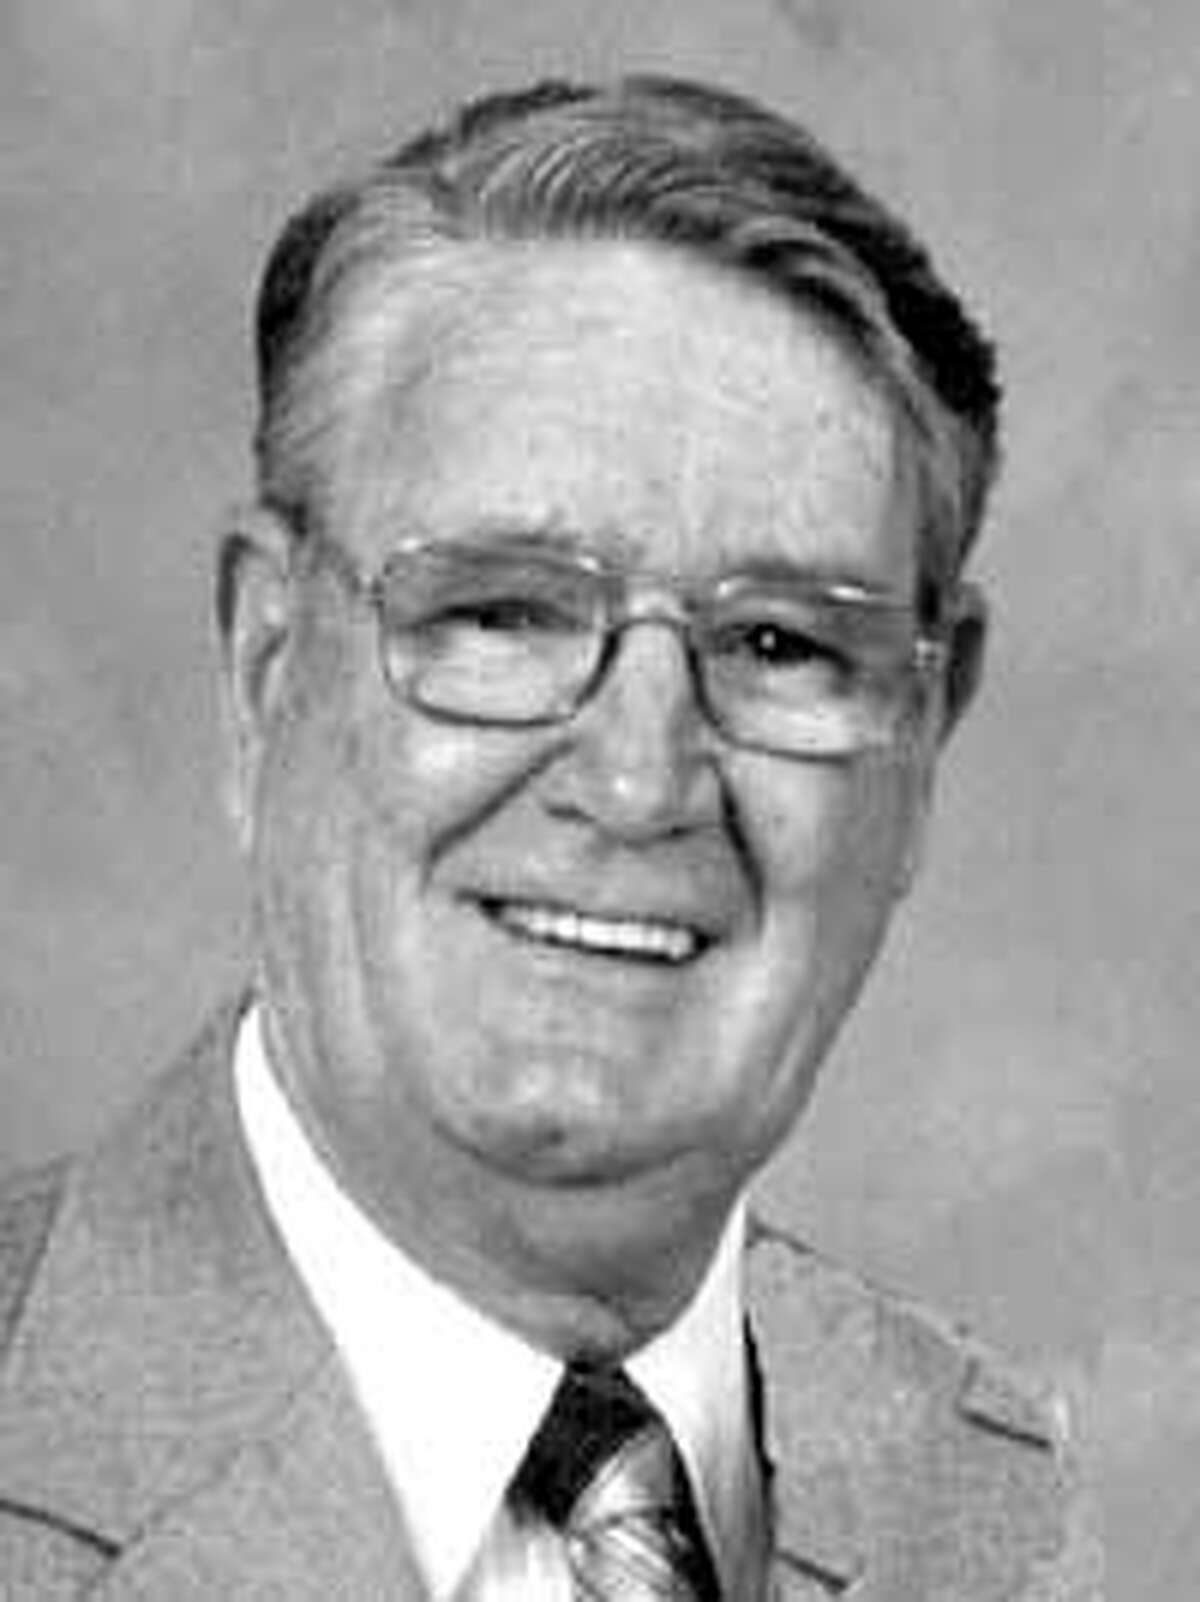 Photo of Timothy F. Casey. Ran on: 12-06-2005 Timothy F. Casey served in the San Francisco Police Department for some 40 years.